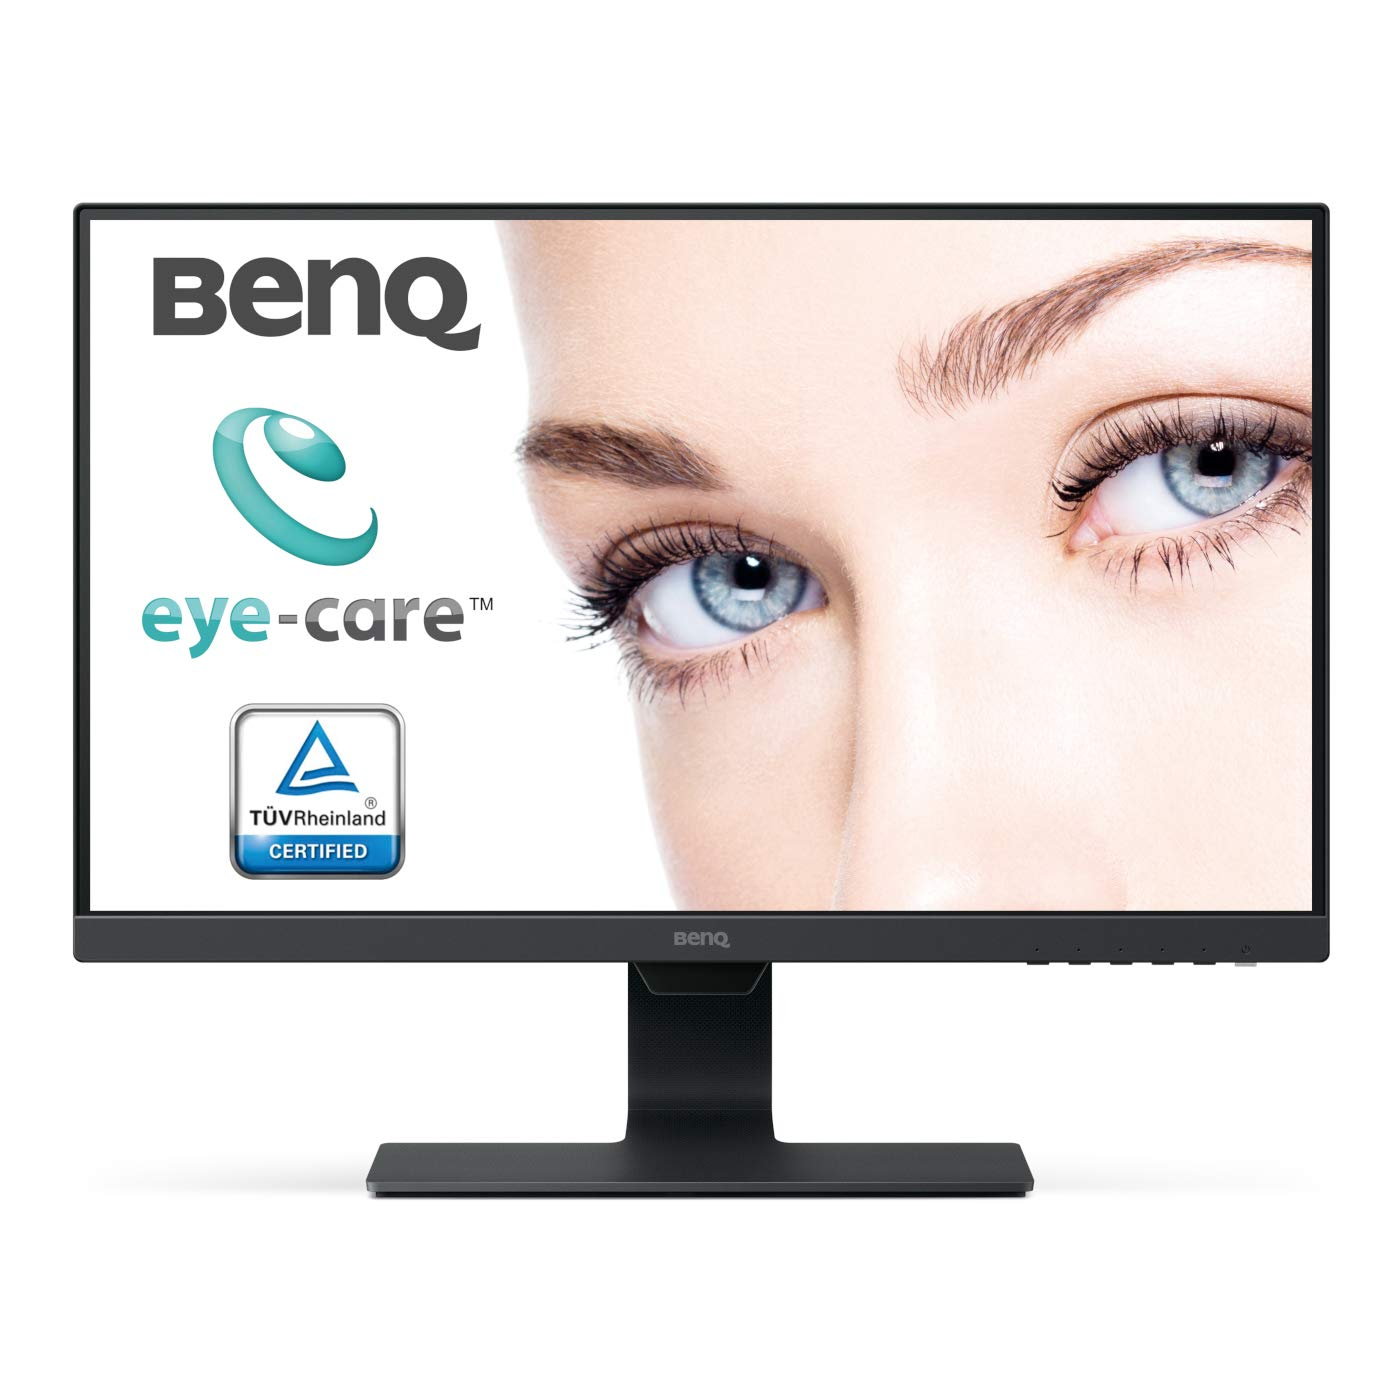 BenQ GW2480 - Monitor de 23.8' FHD (Pantalla de 1920 x 1080, Eye-Care, IPS, HDMI, Brillo Inteligente, Low Blue Light, Bisel superestrecho) Color Negro BenQ GW2480 - Monitor de 23.8 FHD (Pantalla de 1920 x 1080